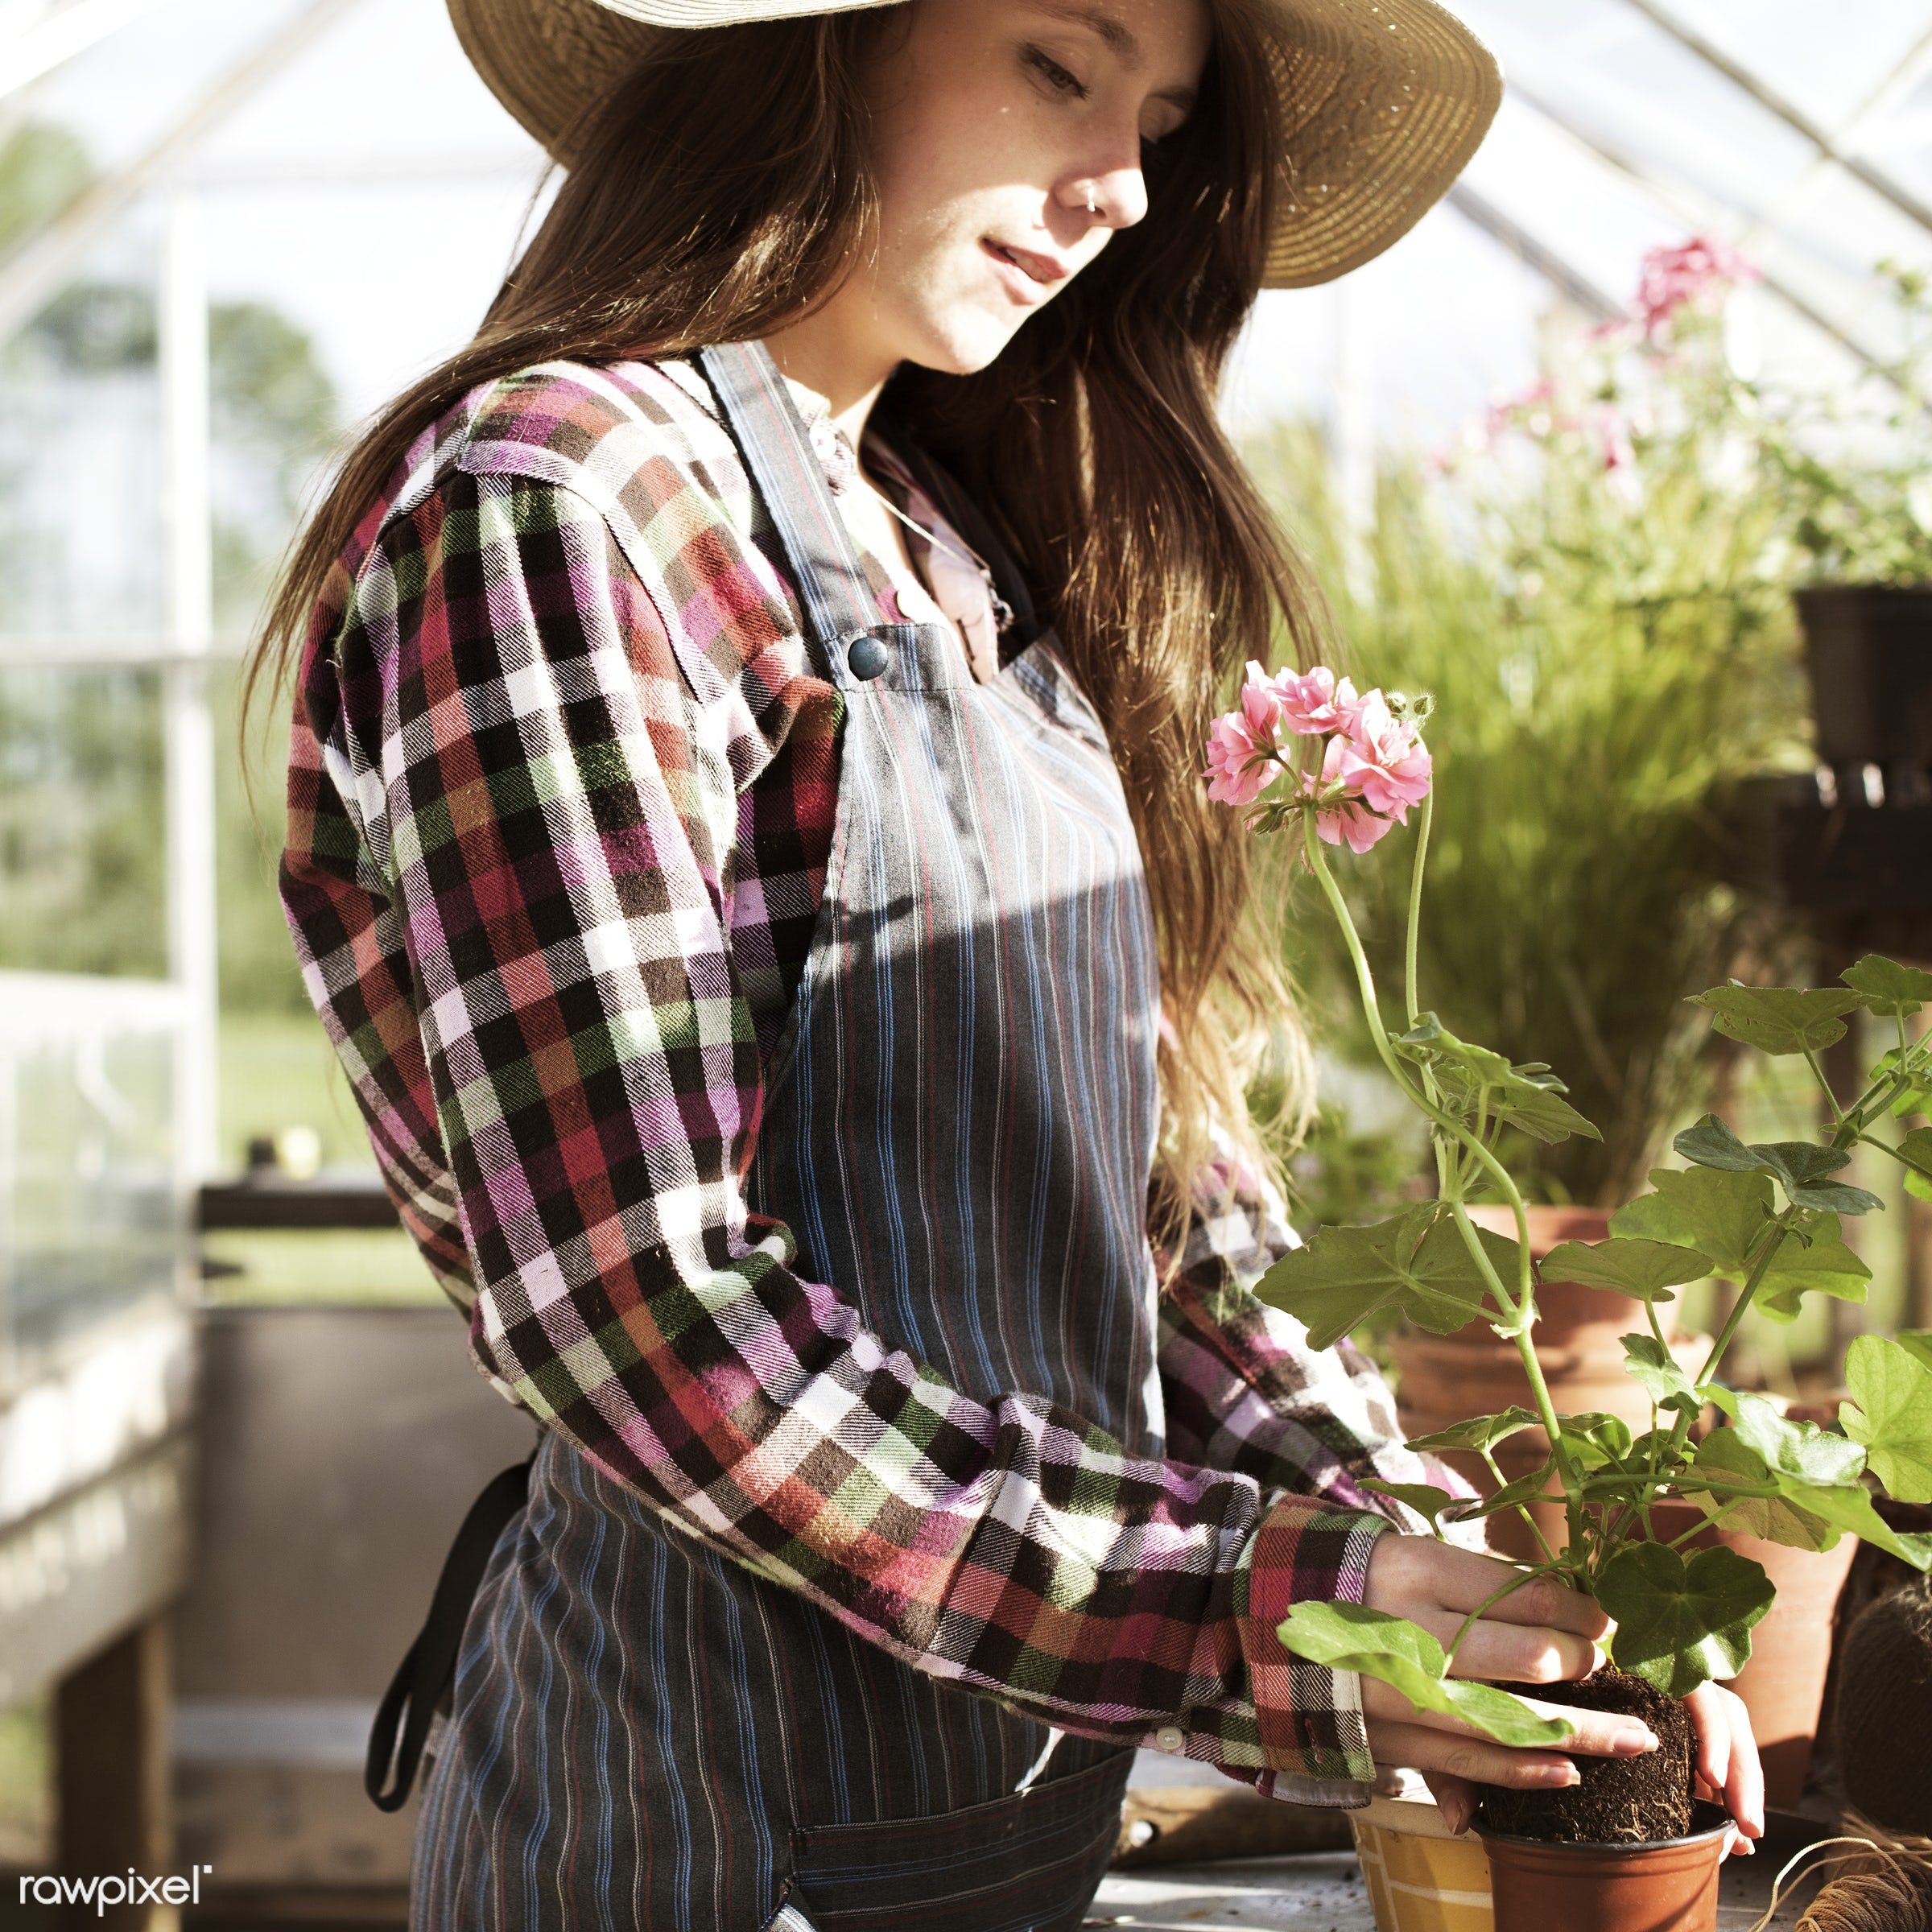 Young woman in the glass greenhouse - agriculture, backyard, bloom, botanical, botany, building, cares, caucasian,...